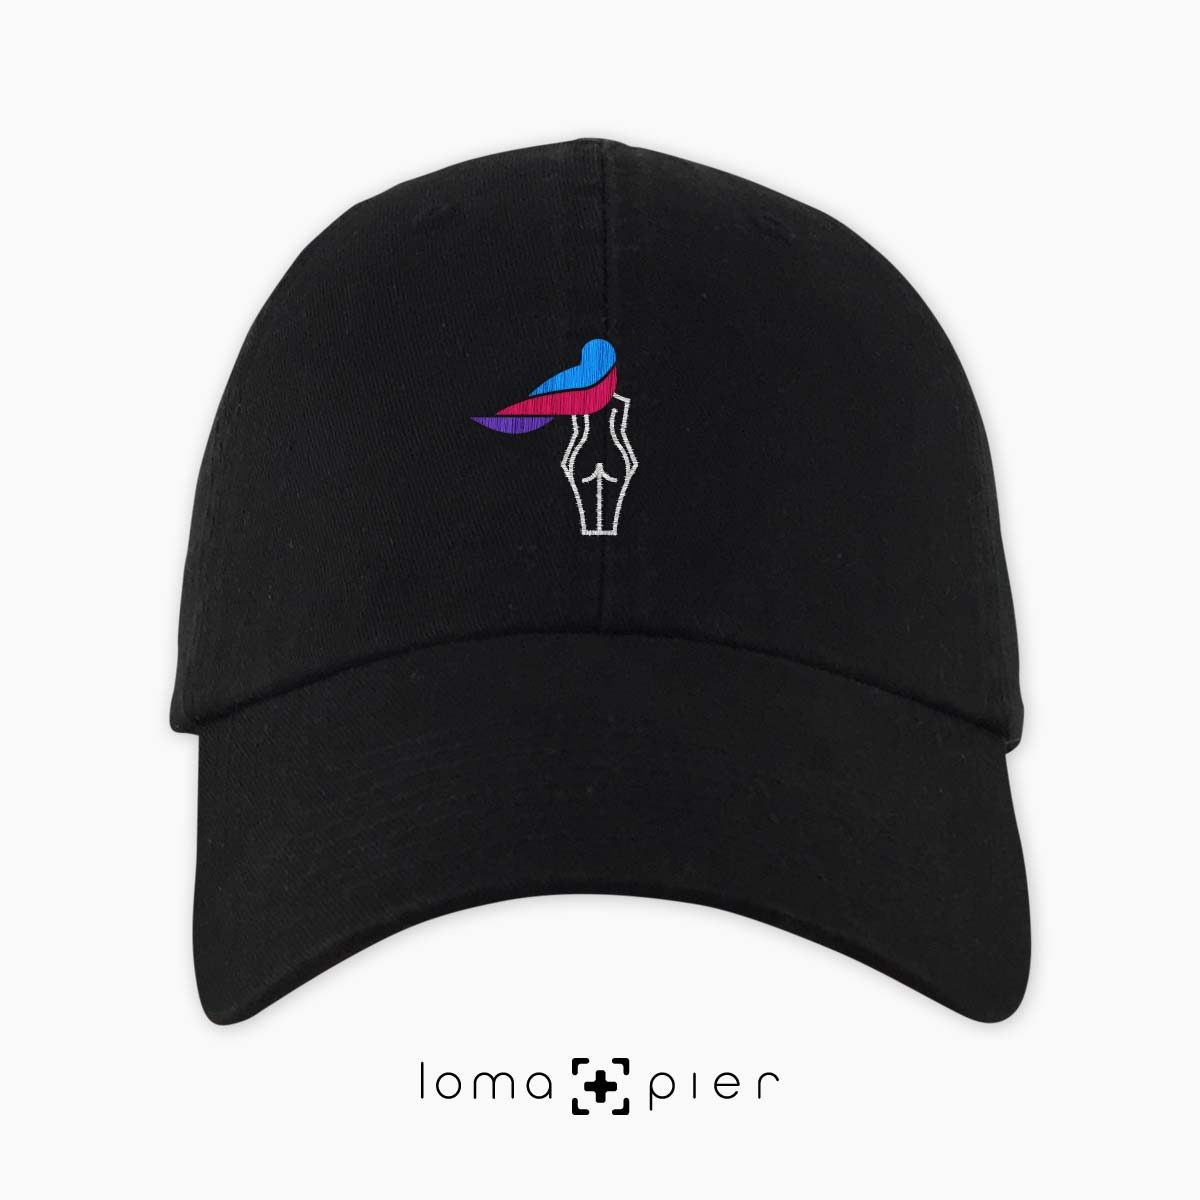 WAVY BEACH icon embroidered on a black unstructured dad hat with multicolored thread by loma+pier hat store made in the USA